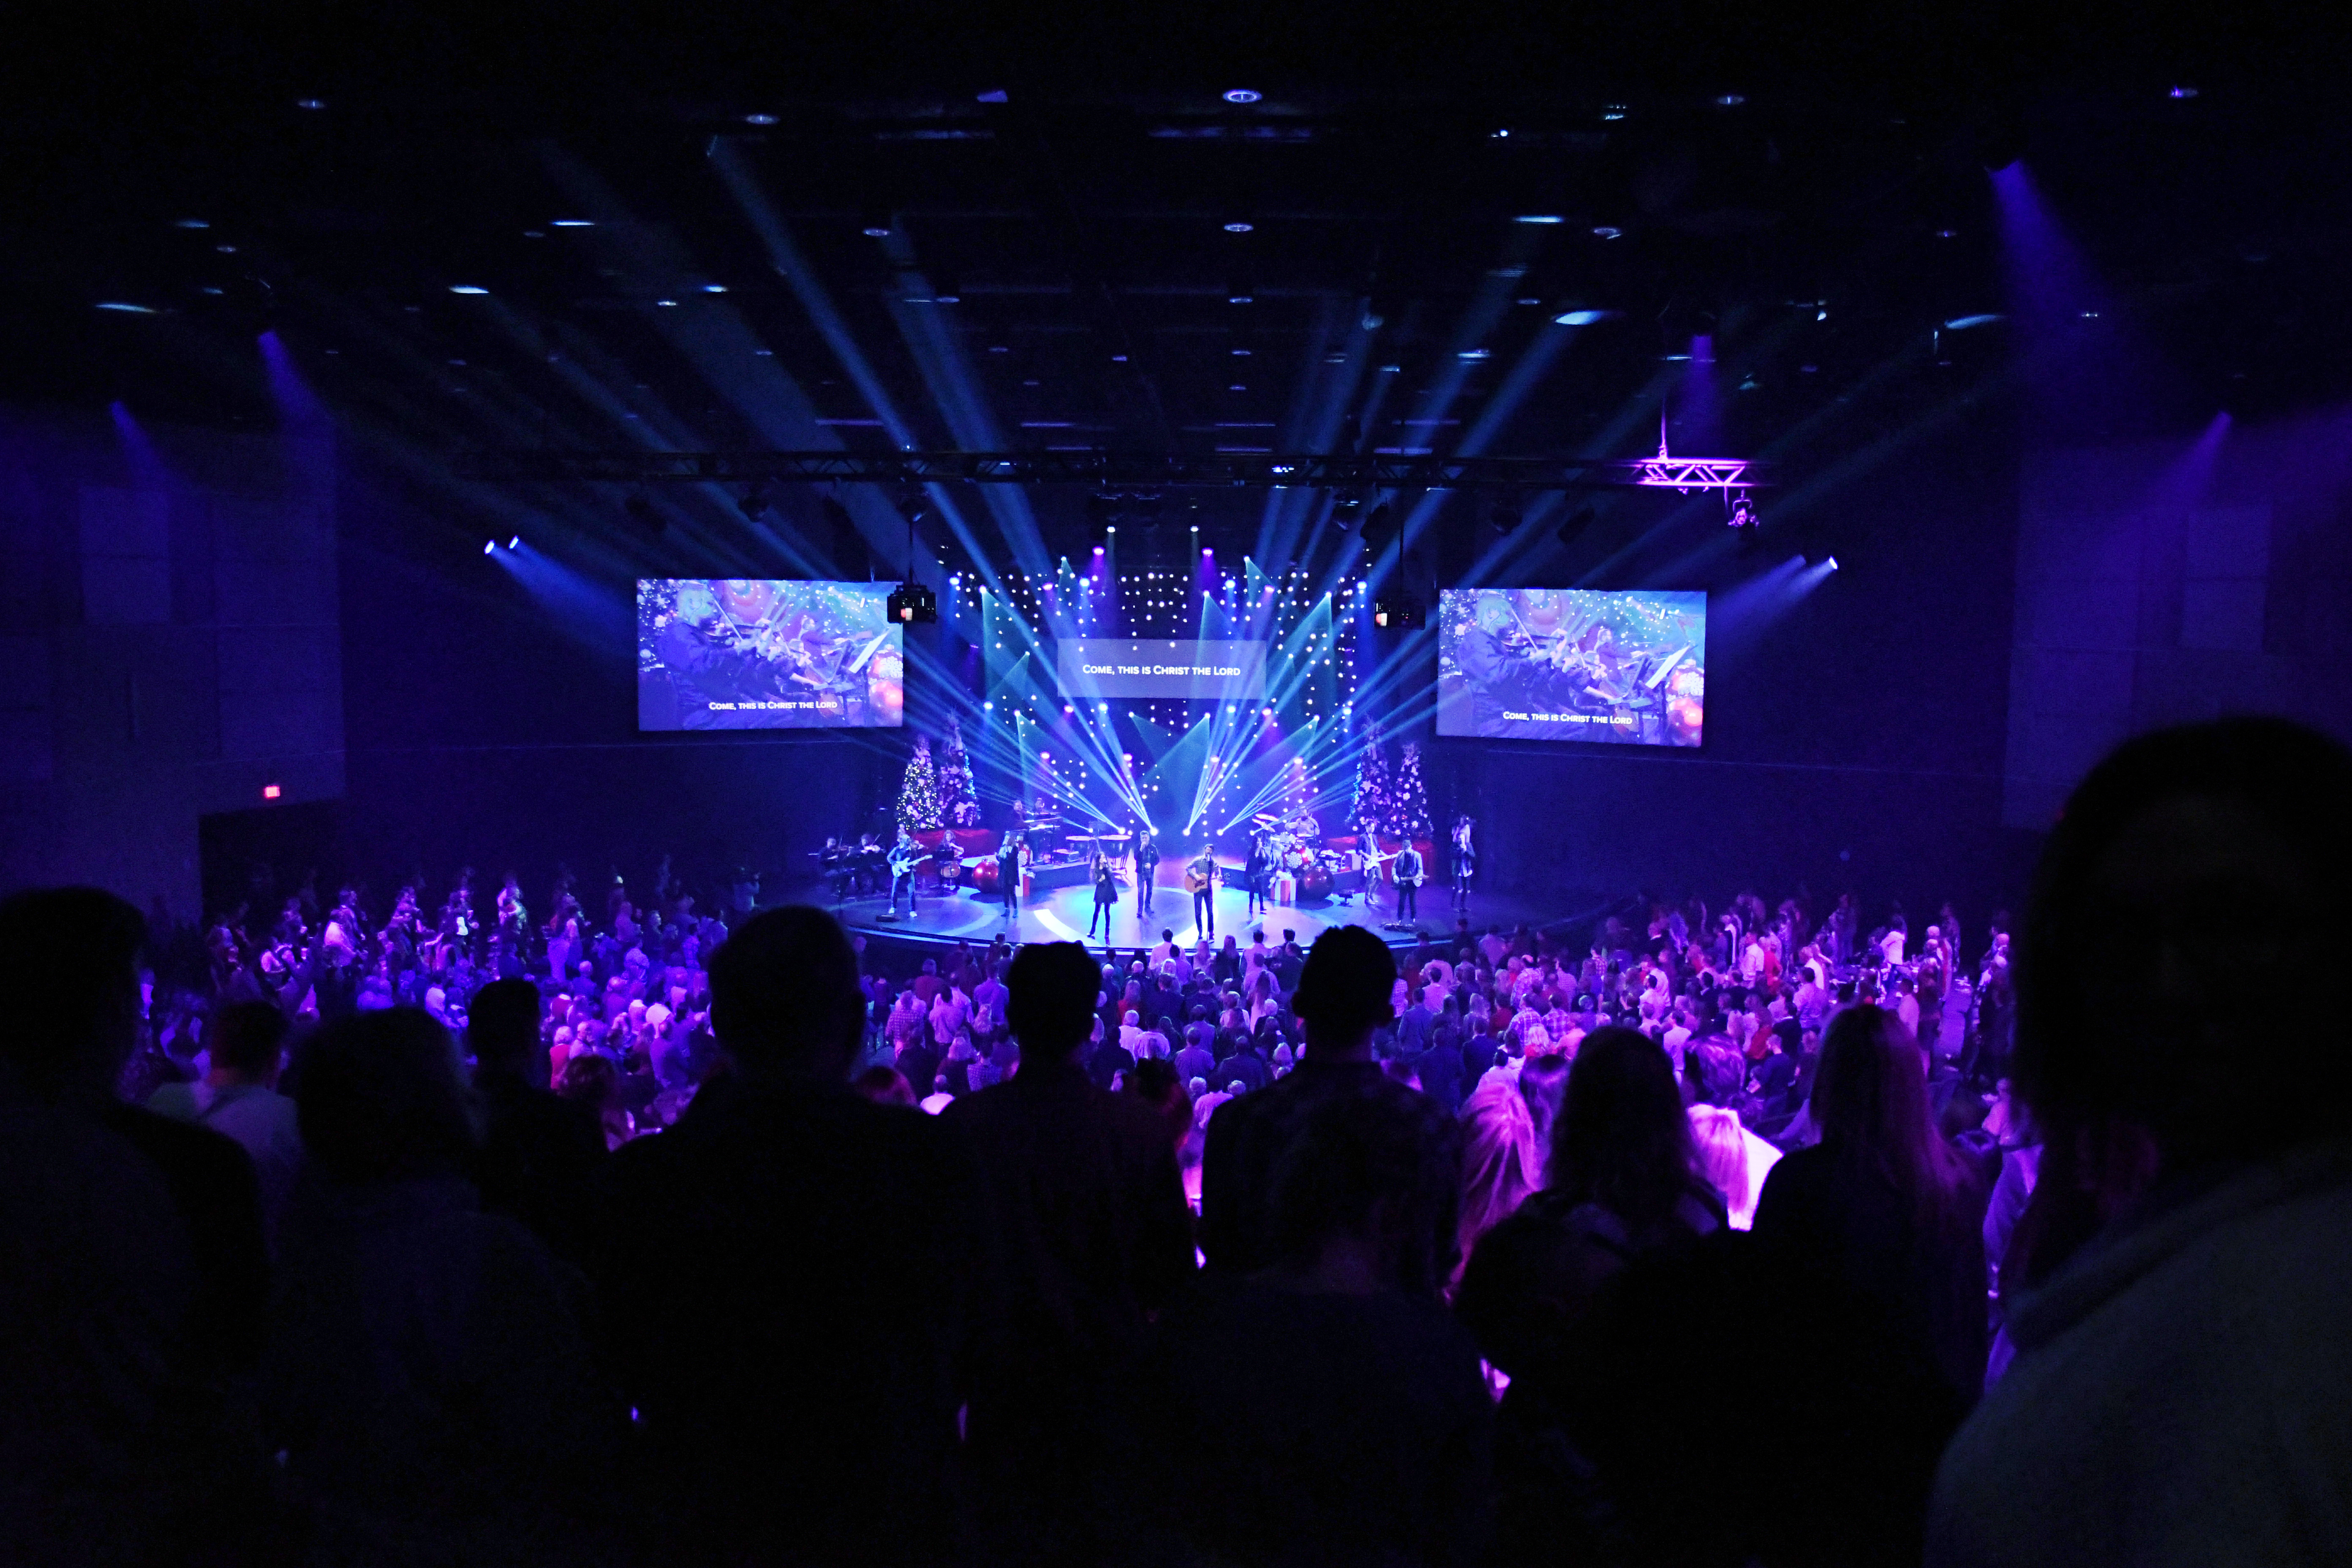 How to ensure a truly engaging worship space, by design